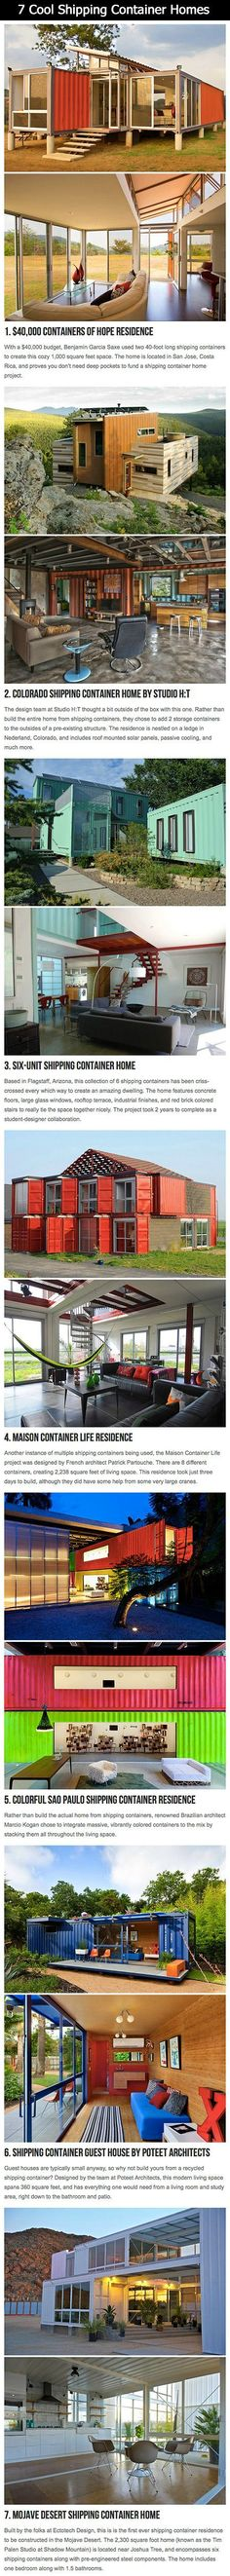 Container House - 7 Extremely Cool and Creative Shipping Container Homes Who Else Wants Simple Step-By-Step Plans To Design And Build A Container Home From Scratch?